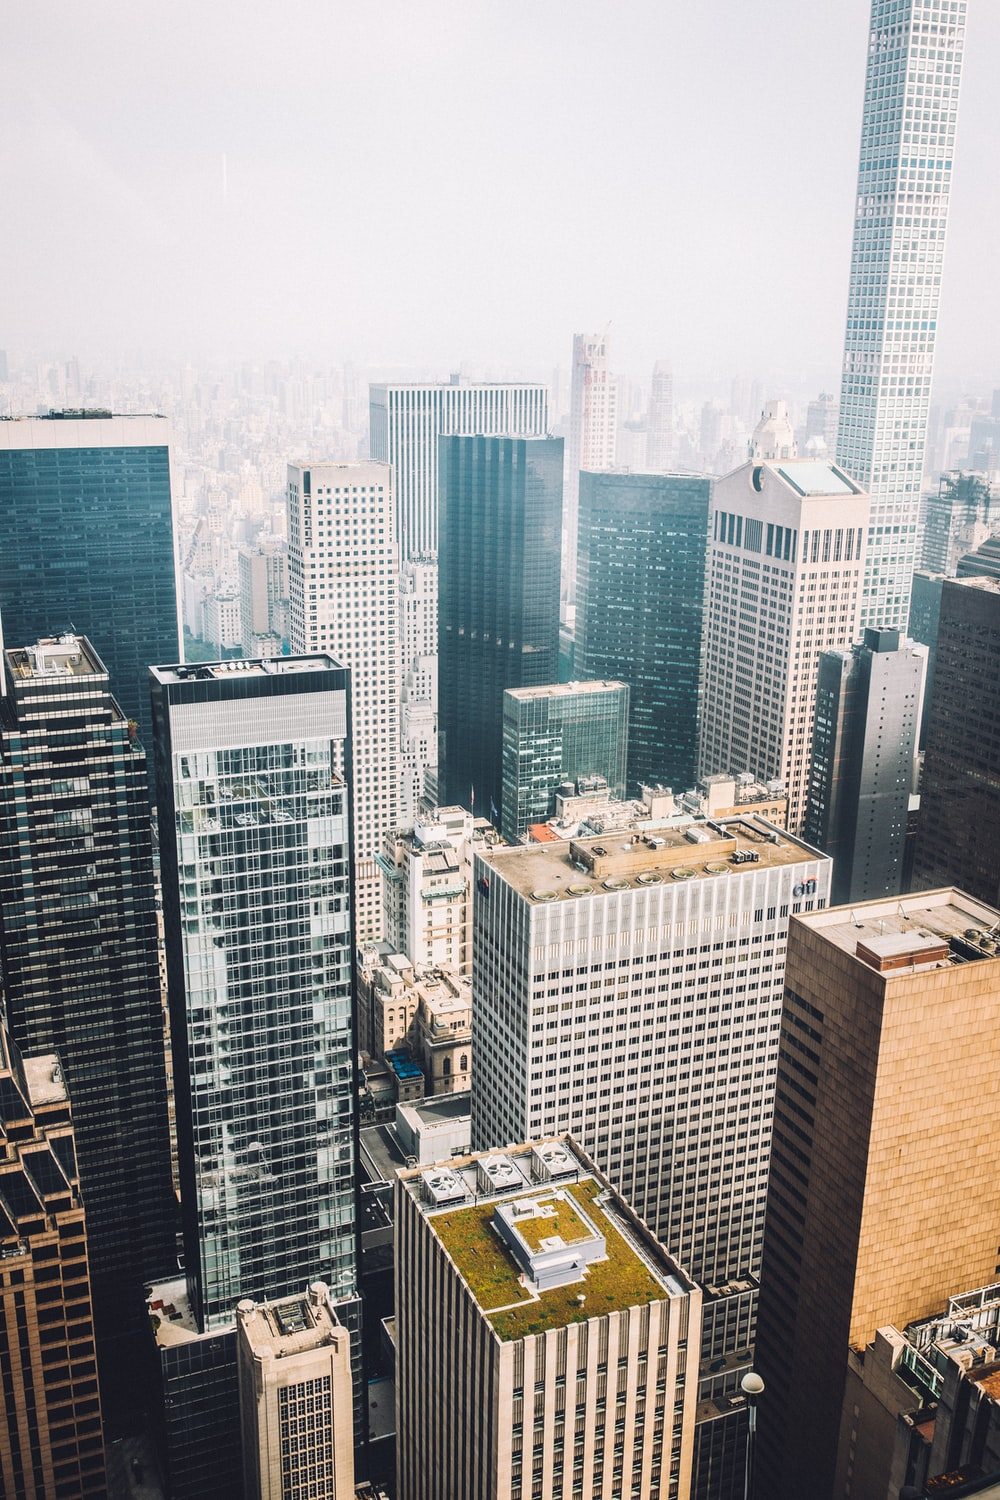 buildings in bird's-eye view photography